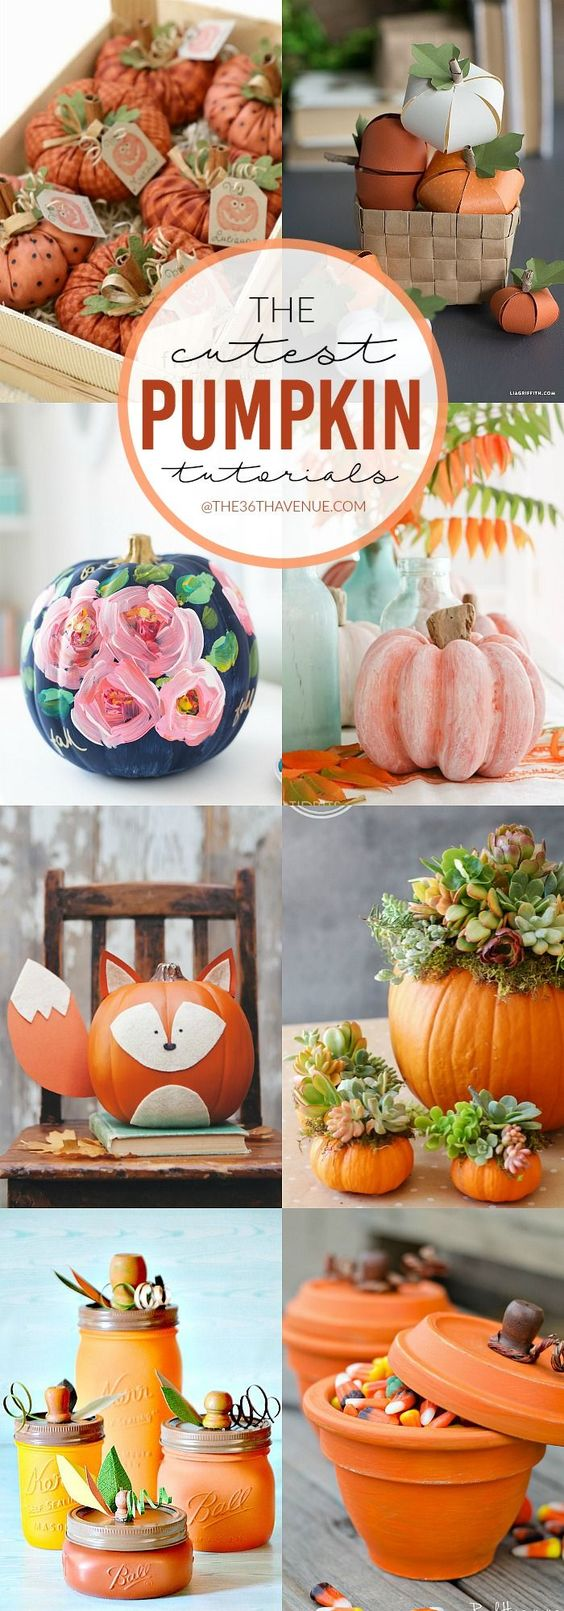 Pinterest the world s catalog of ideas for How to decorate a pumpkin for thanksgiving